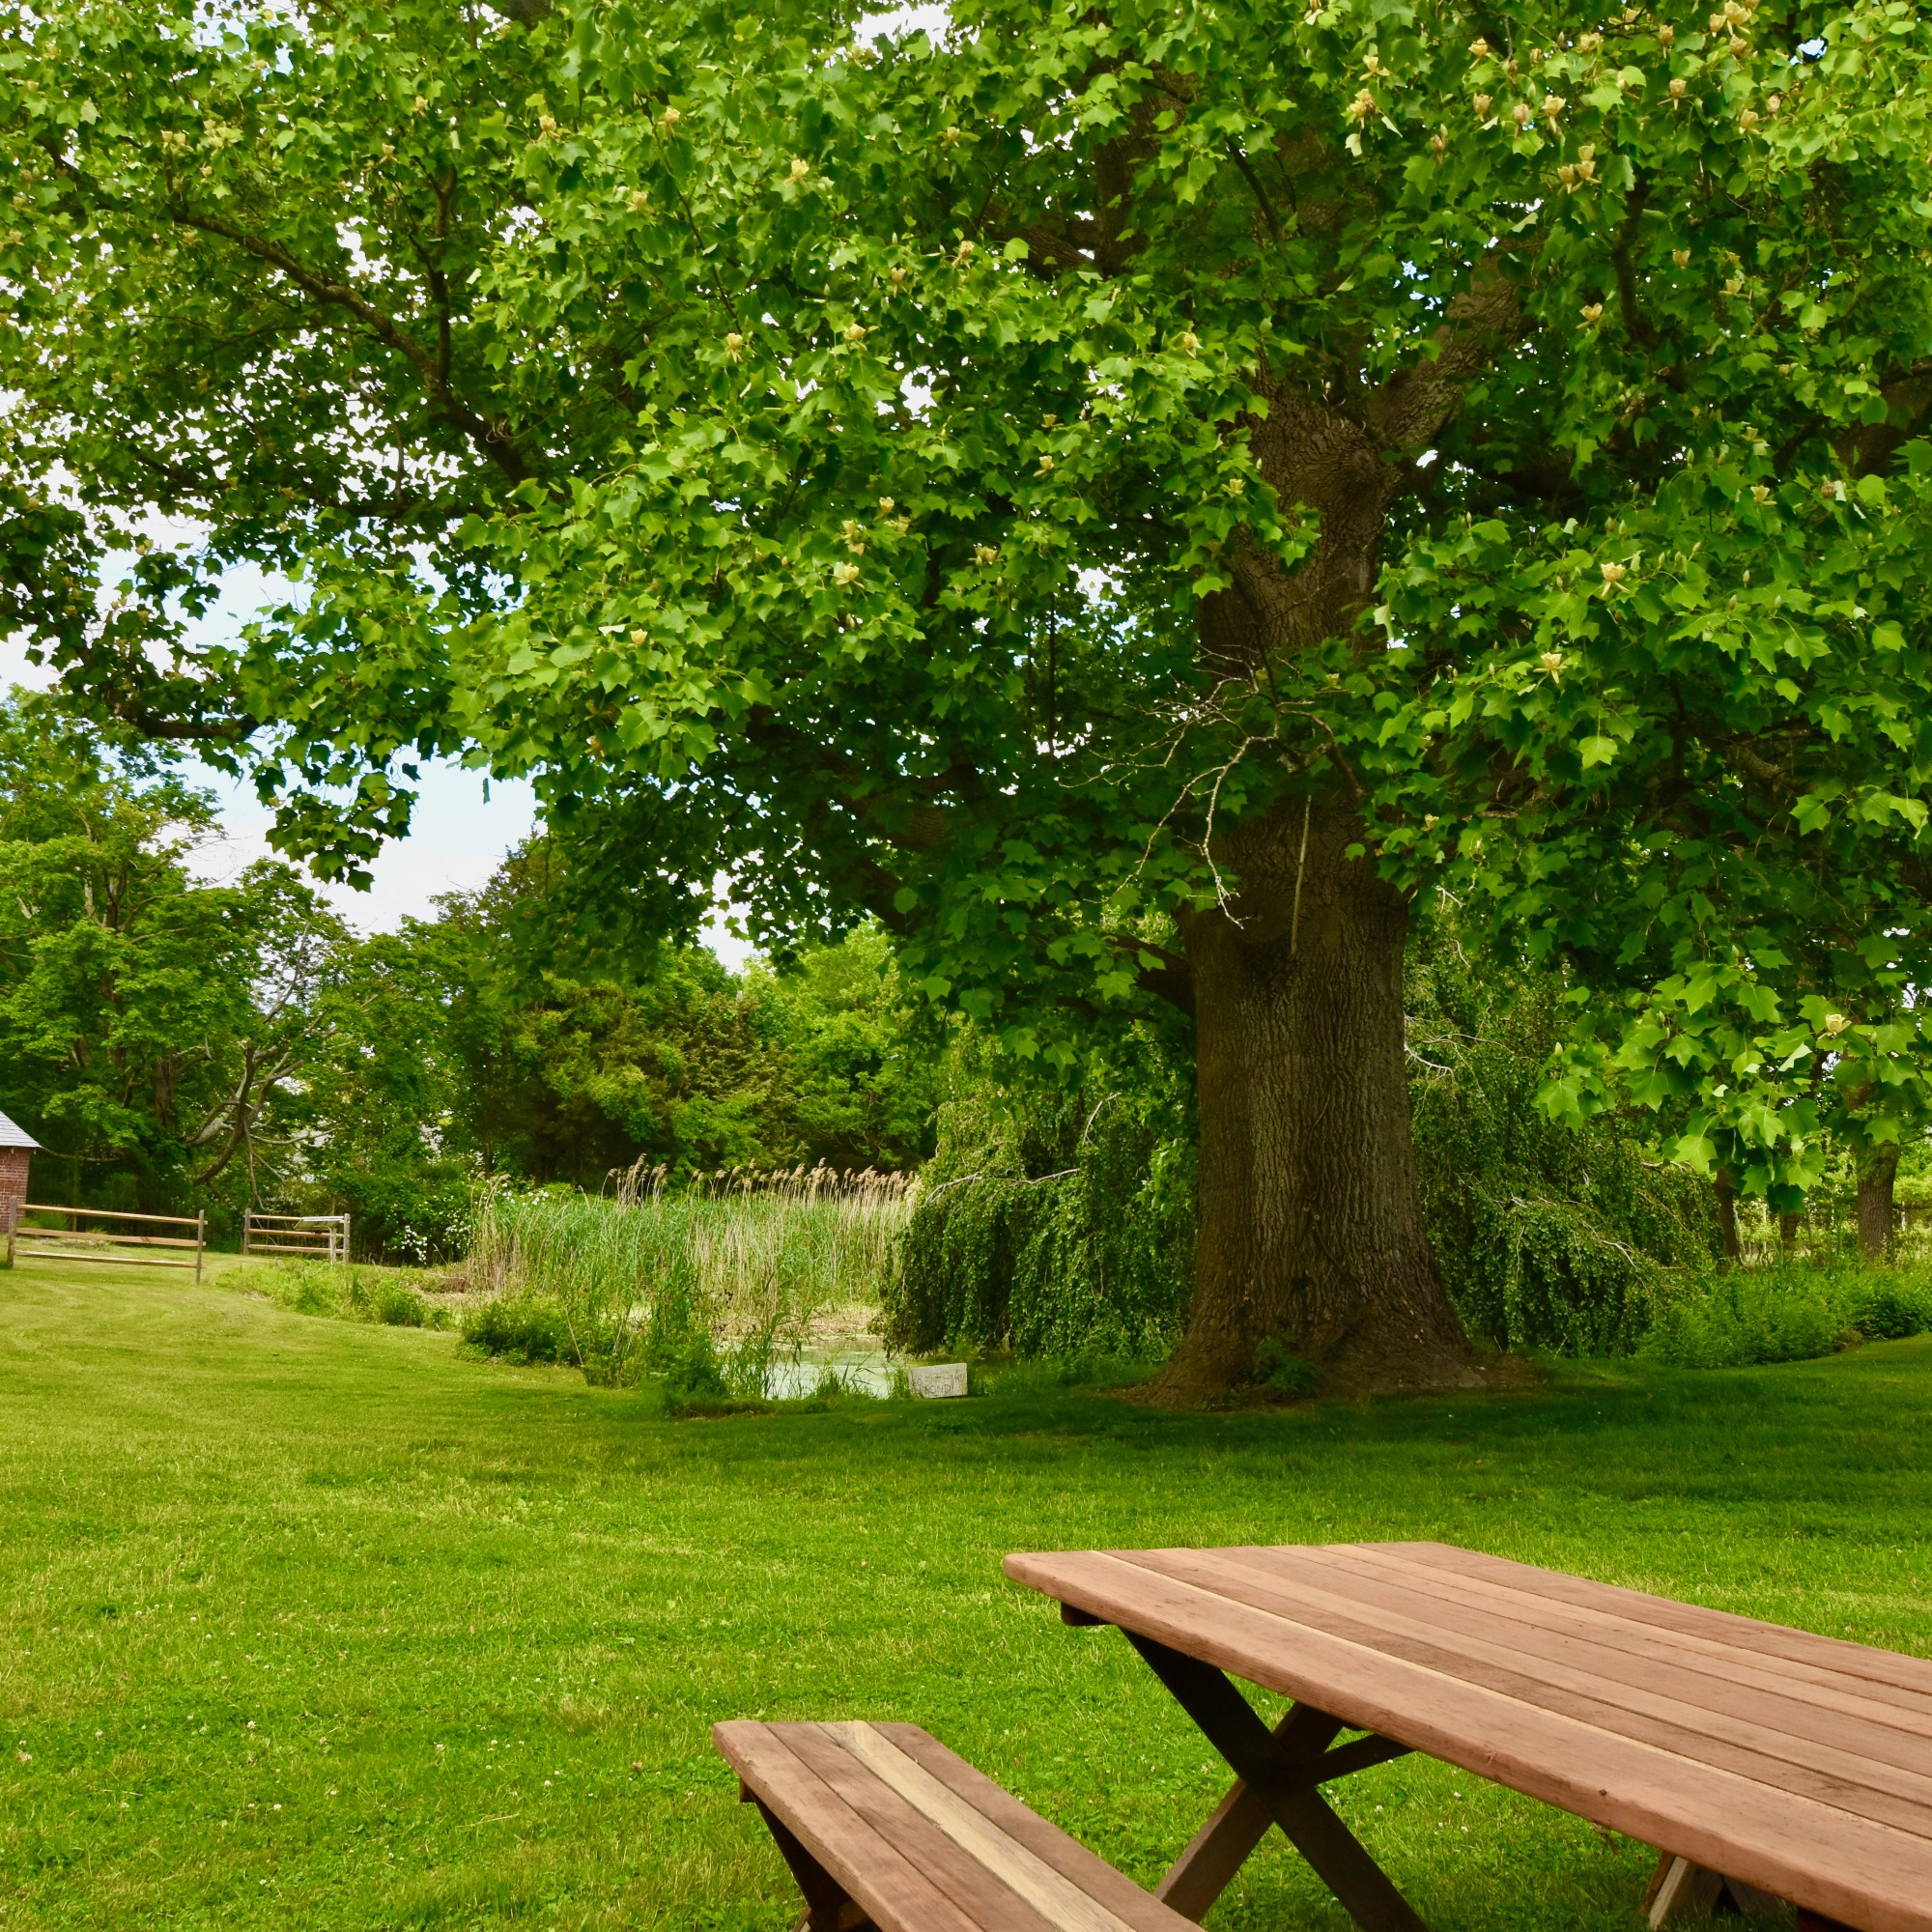 Picnic Table by pond